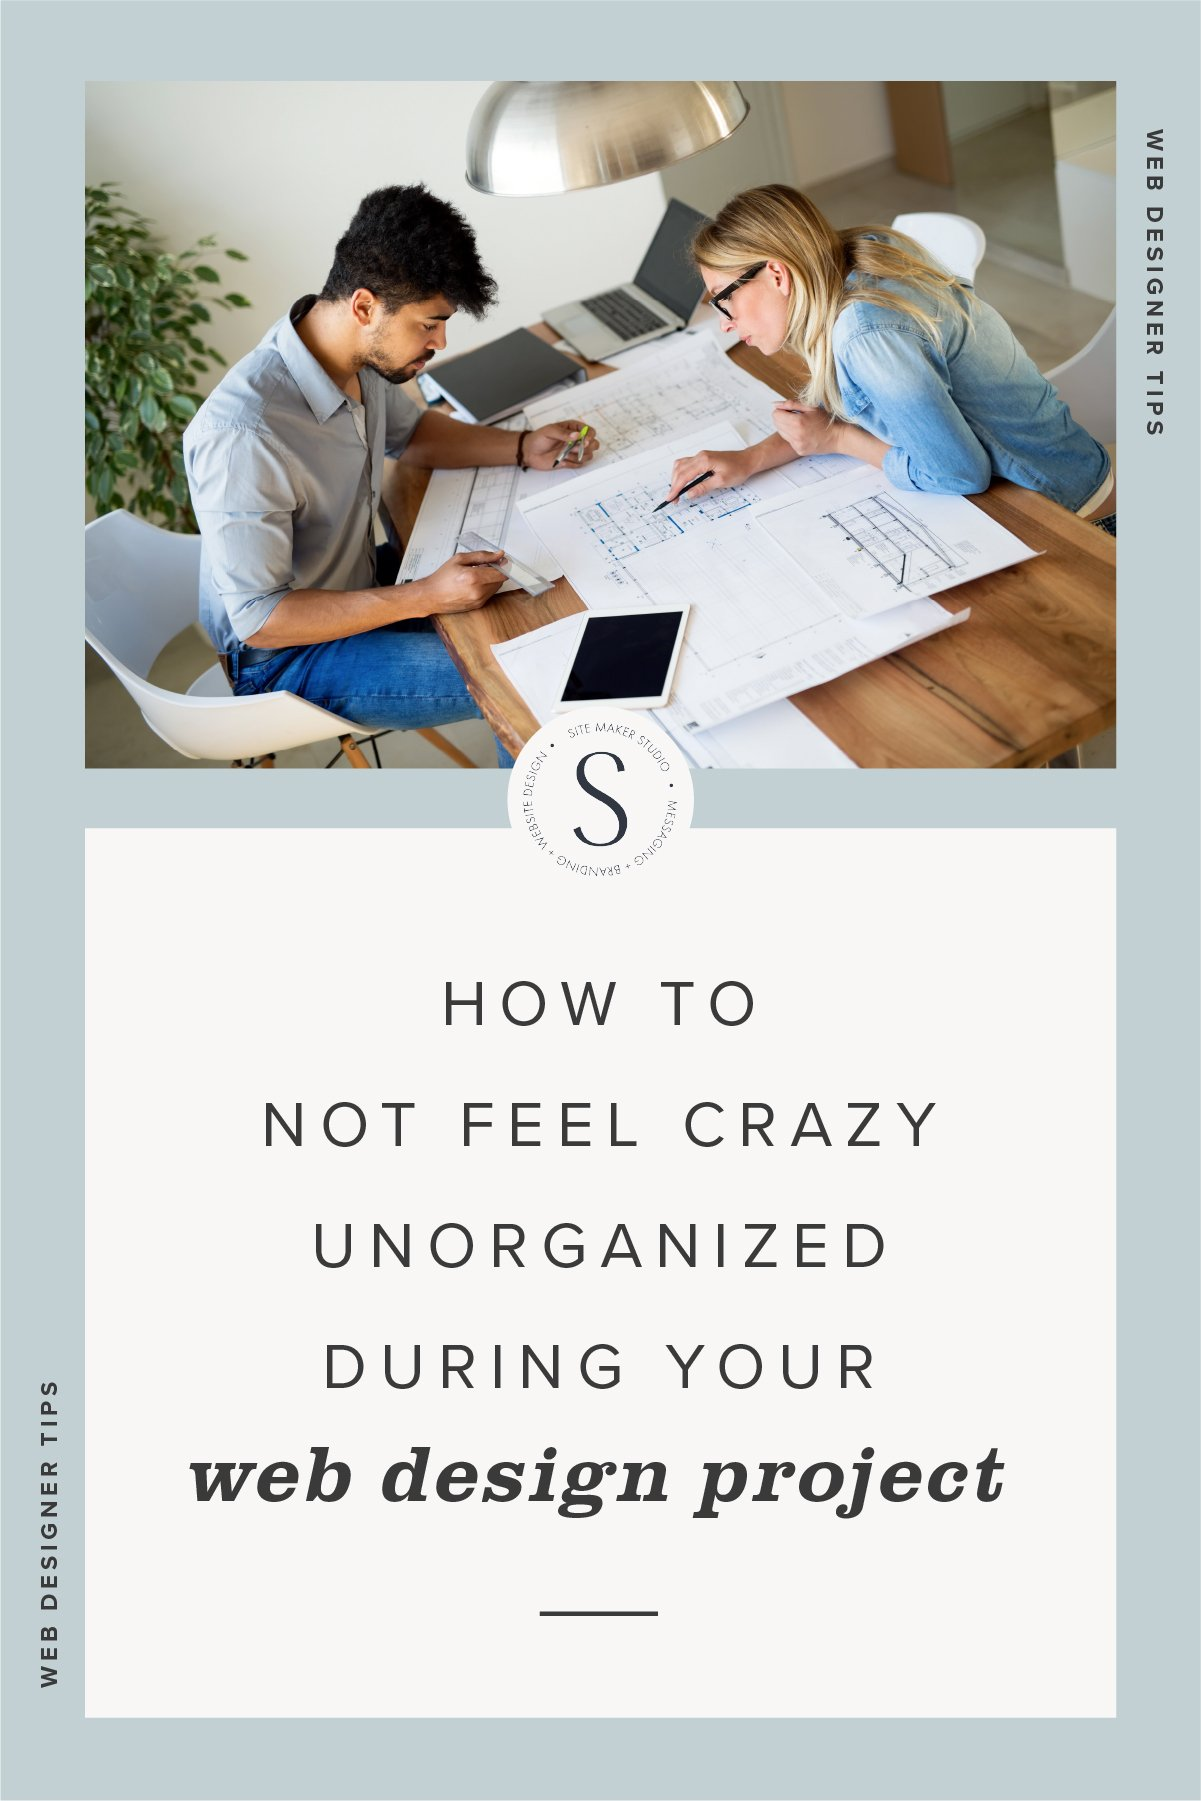 how to not feel unorganized during a web design project